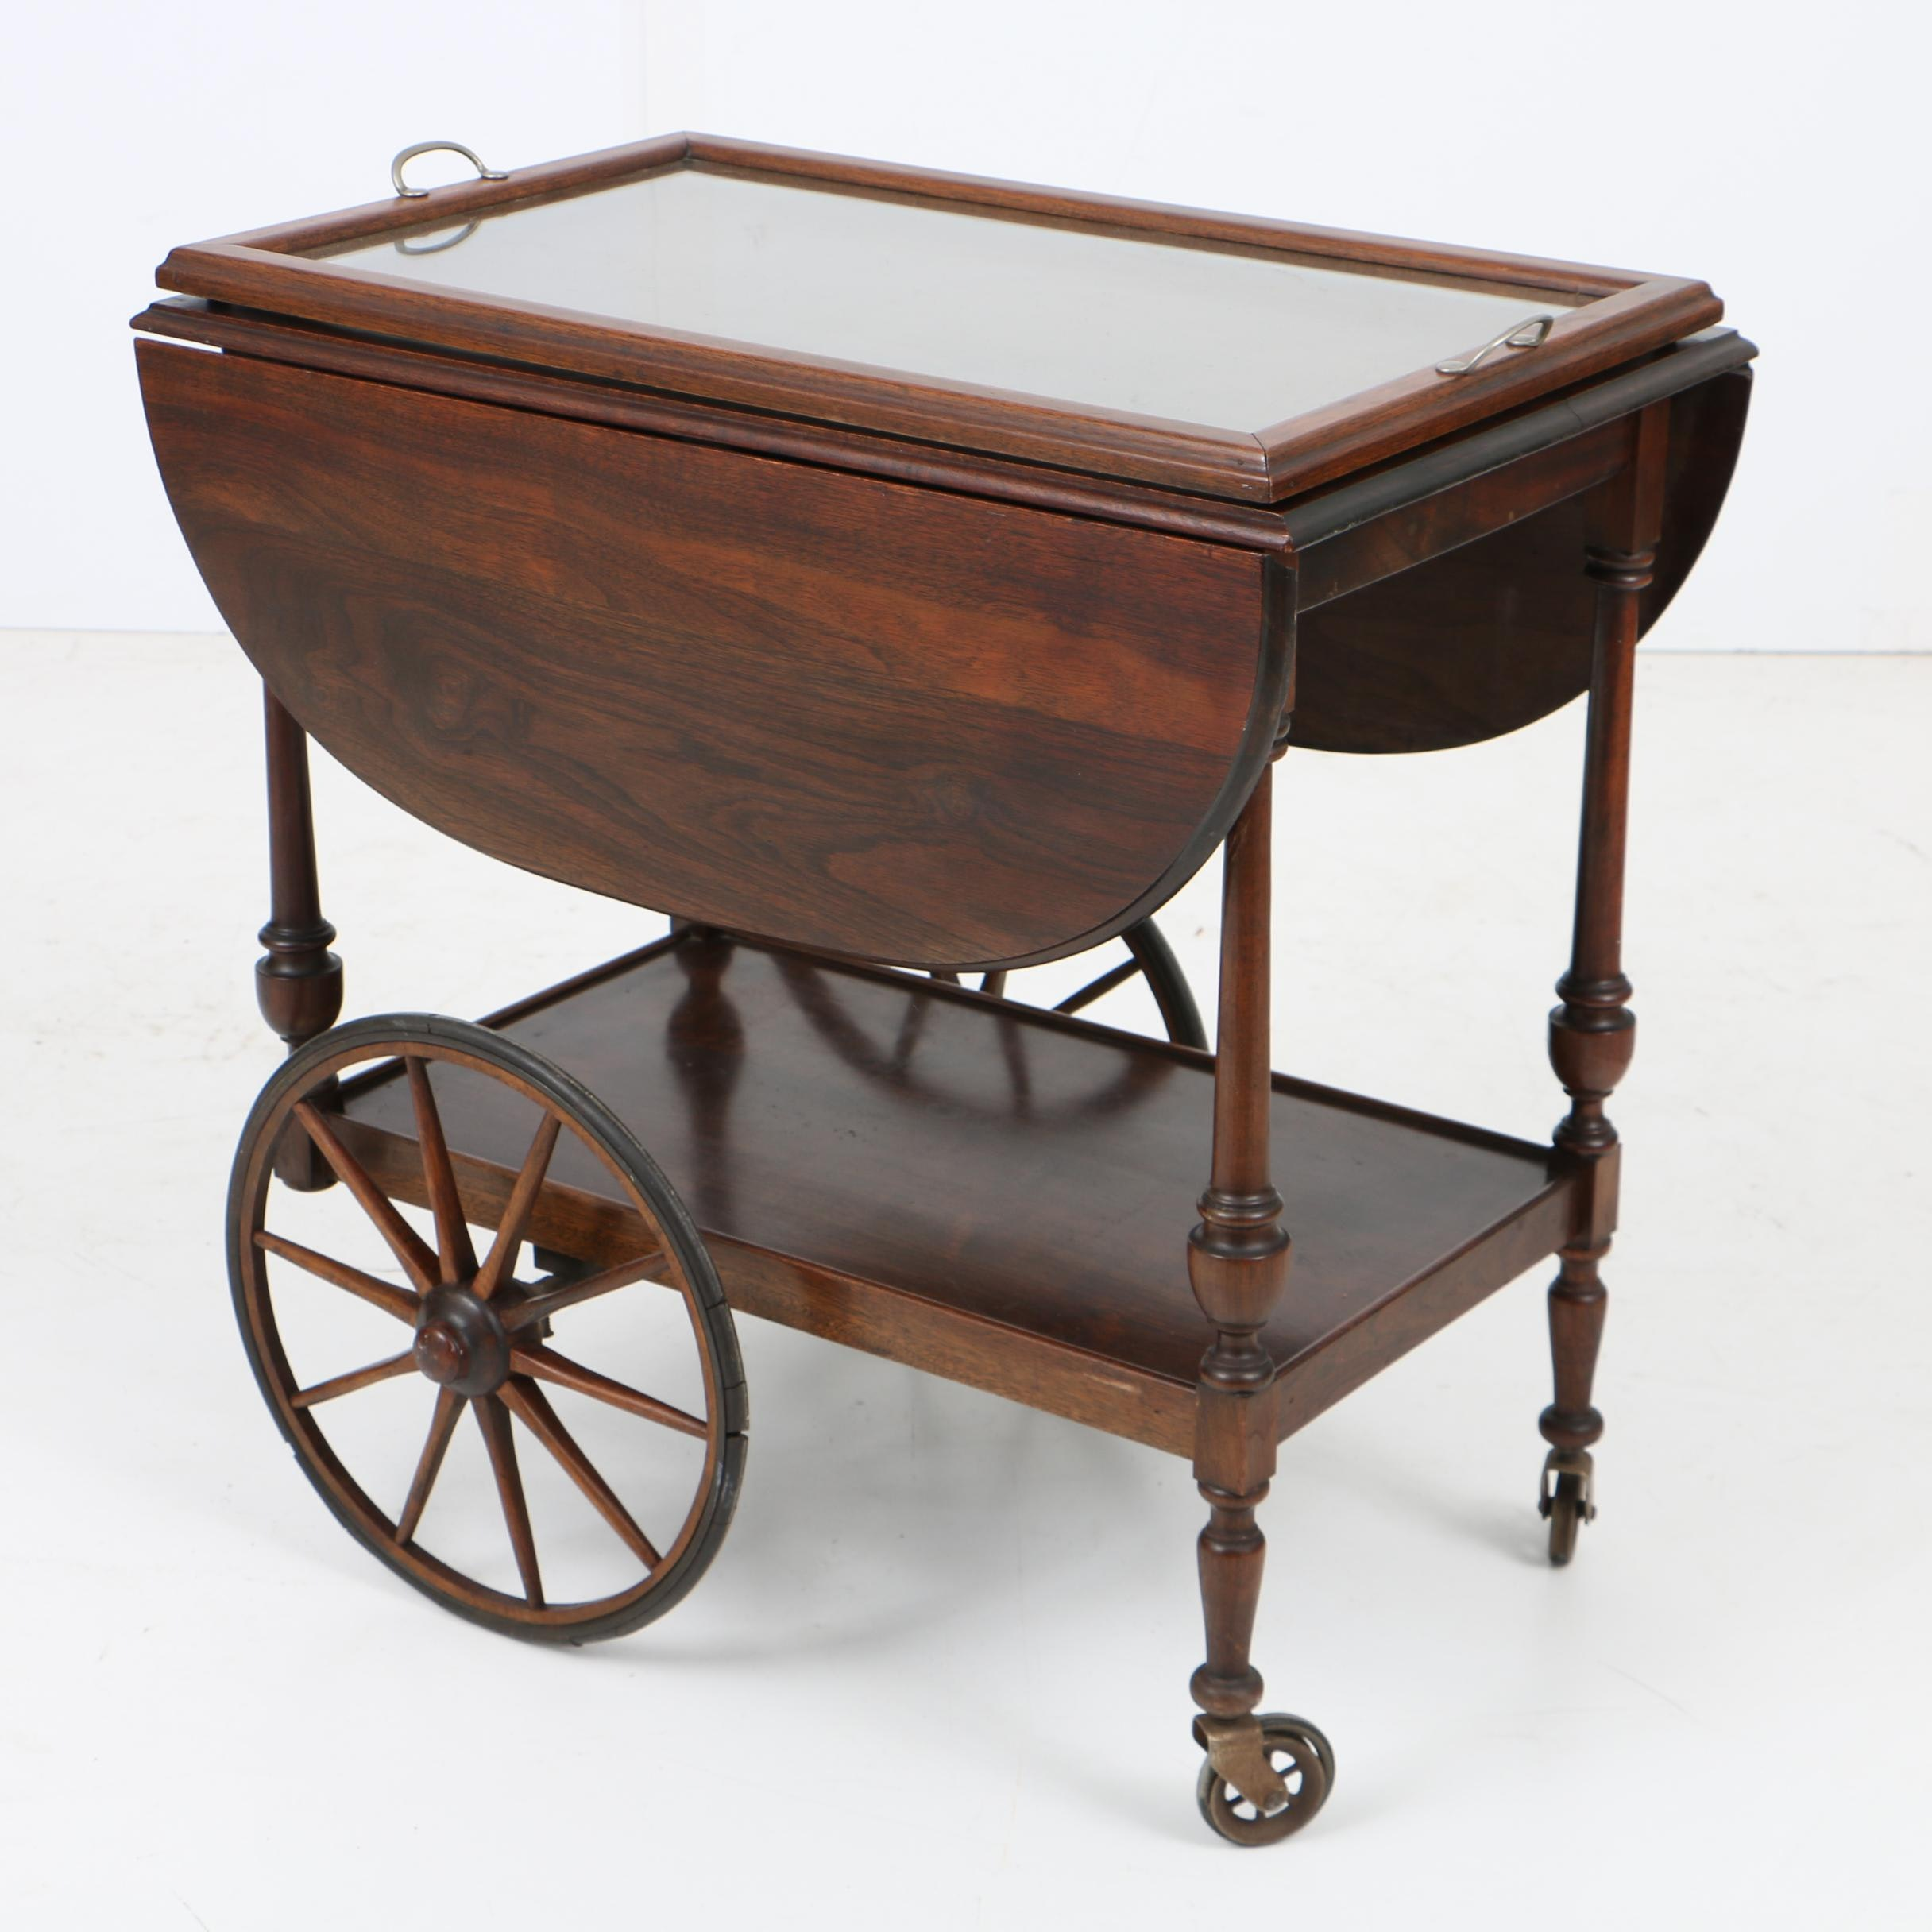 Vintage Walnut Tea Cart with Glass Serving Tray